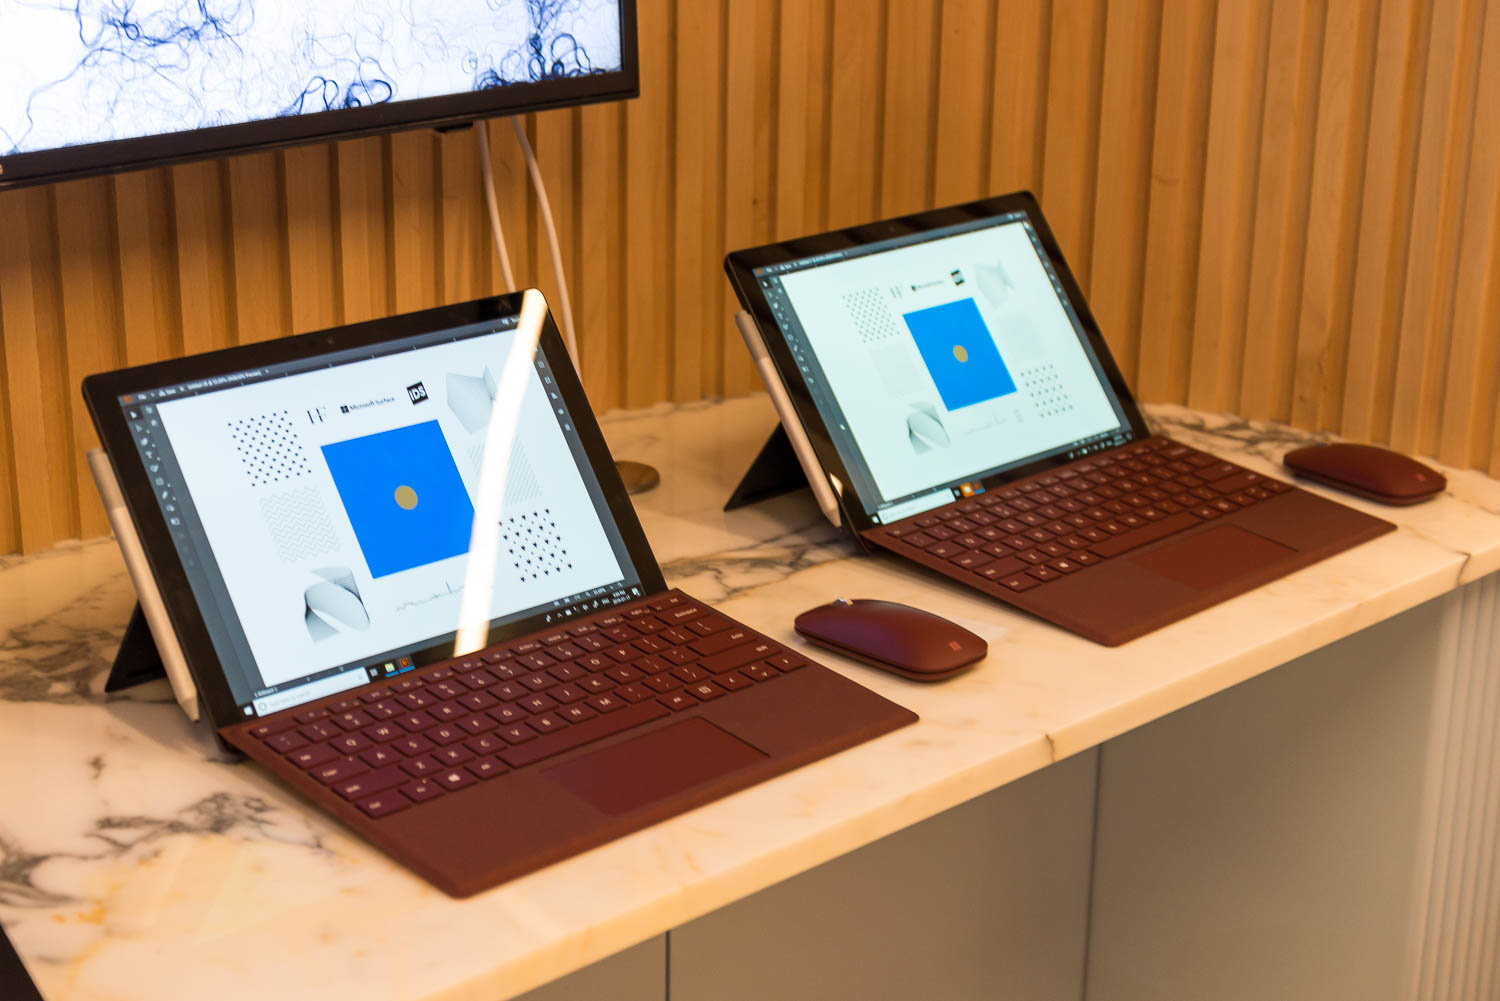 Design Station Tablets